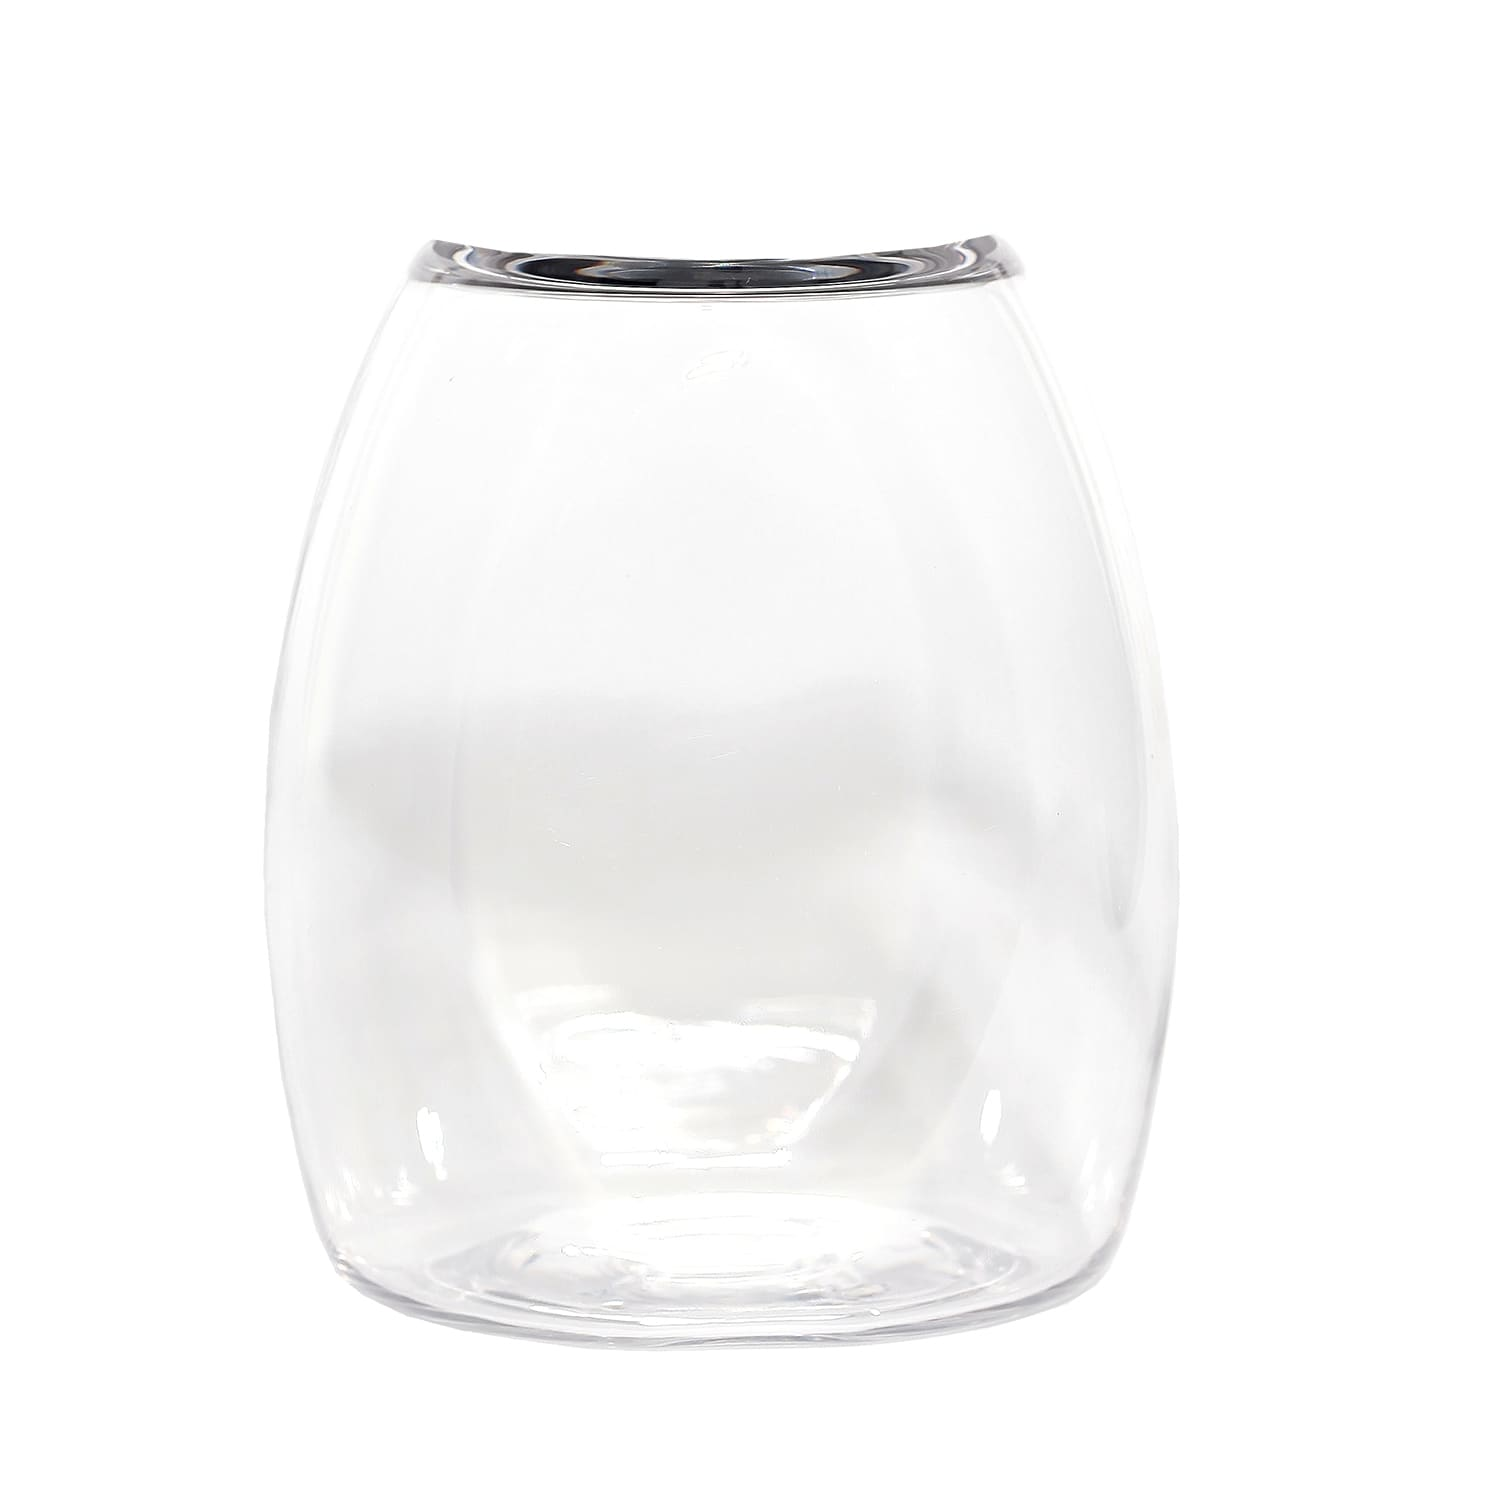 Service Ideas SRJ10CL 10 oz Syrup Dispenser, BPA Free, Clear